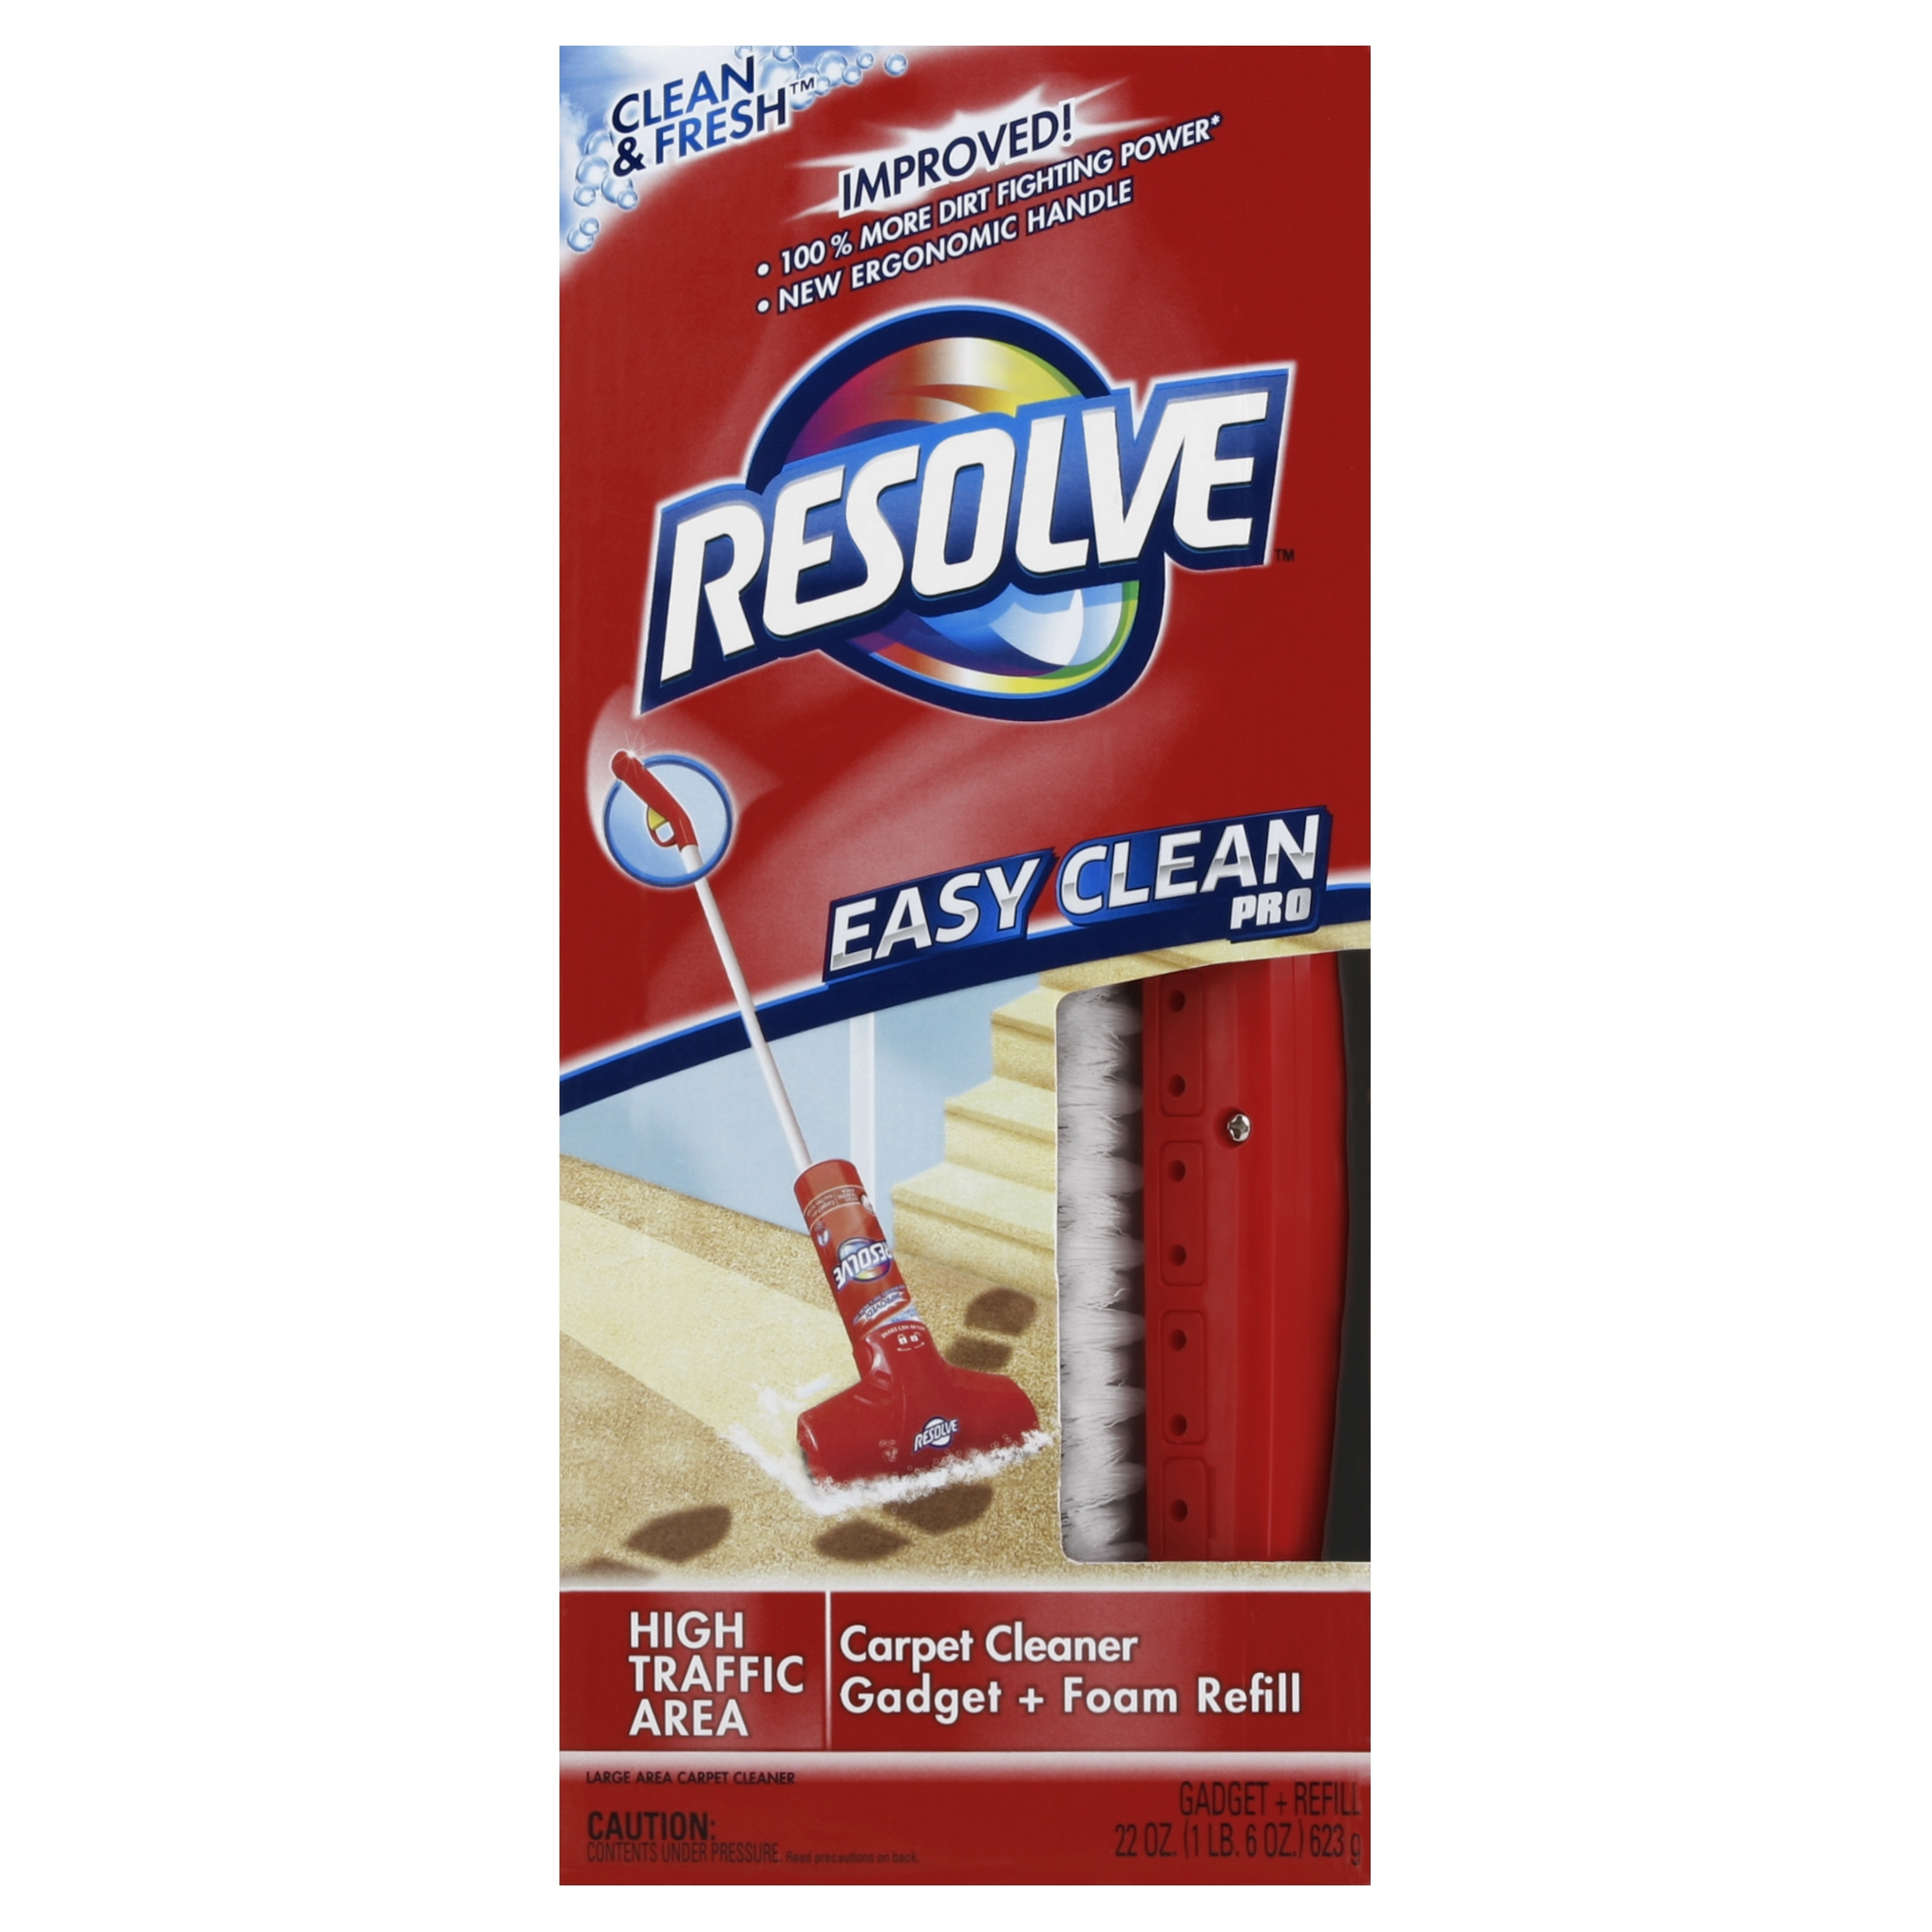 Resolve Easy Clean Pro Carpet Cleaner, 2 Count